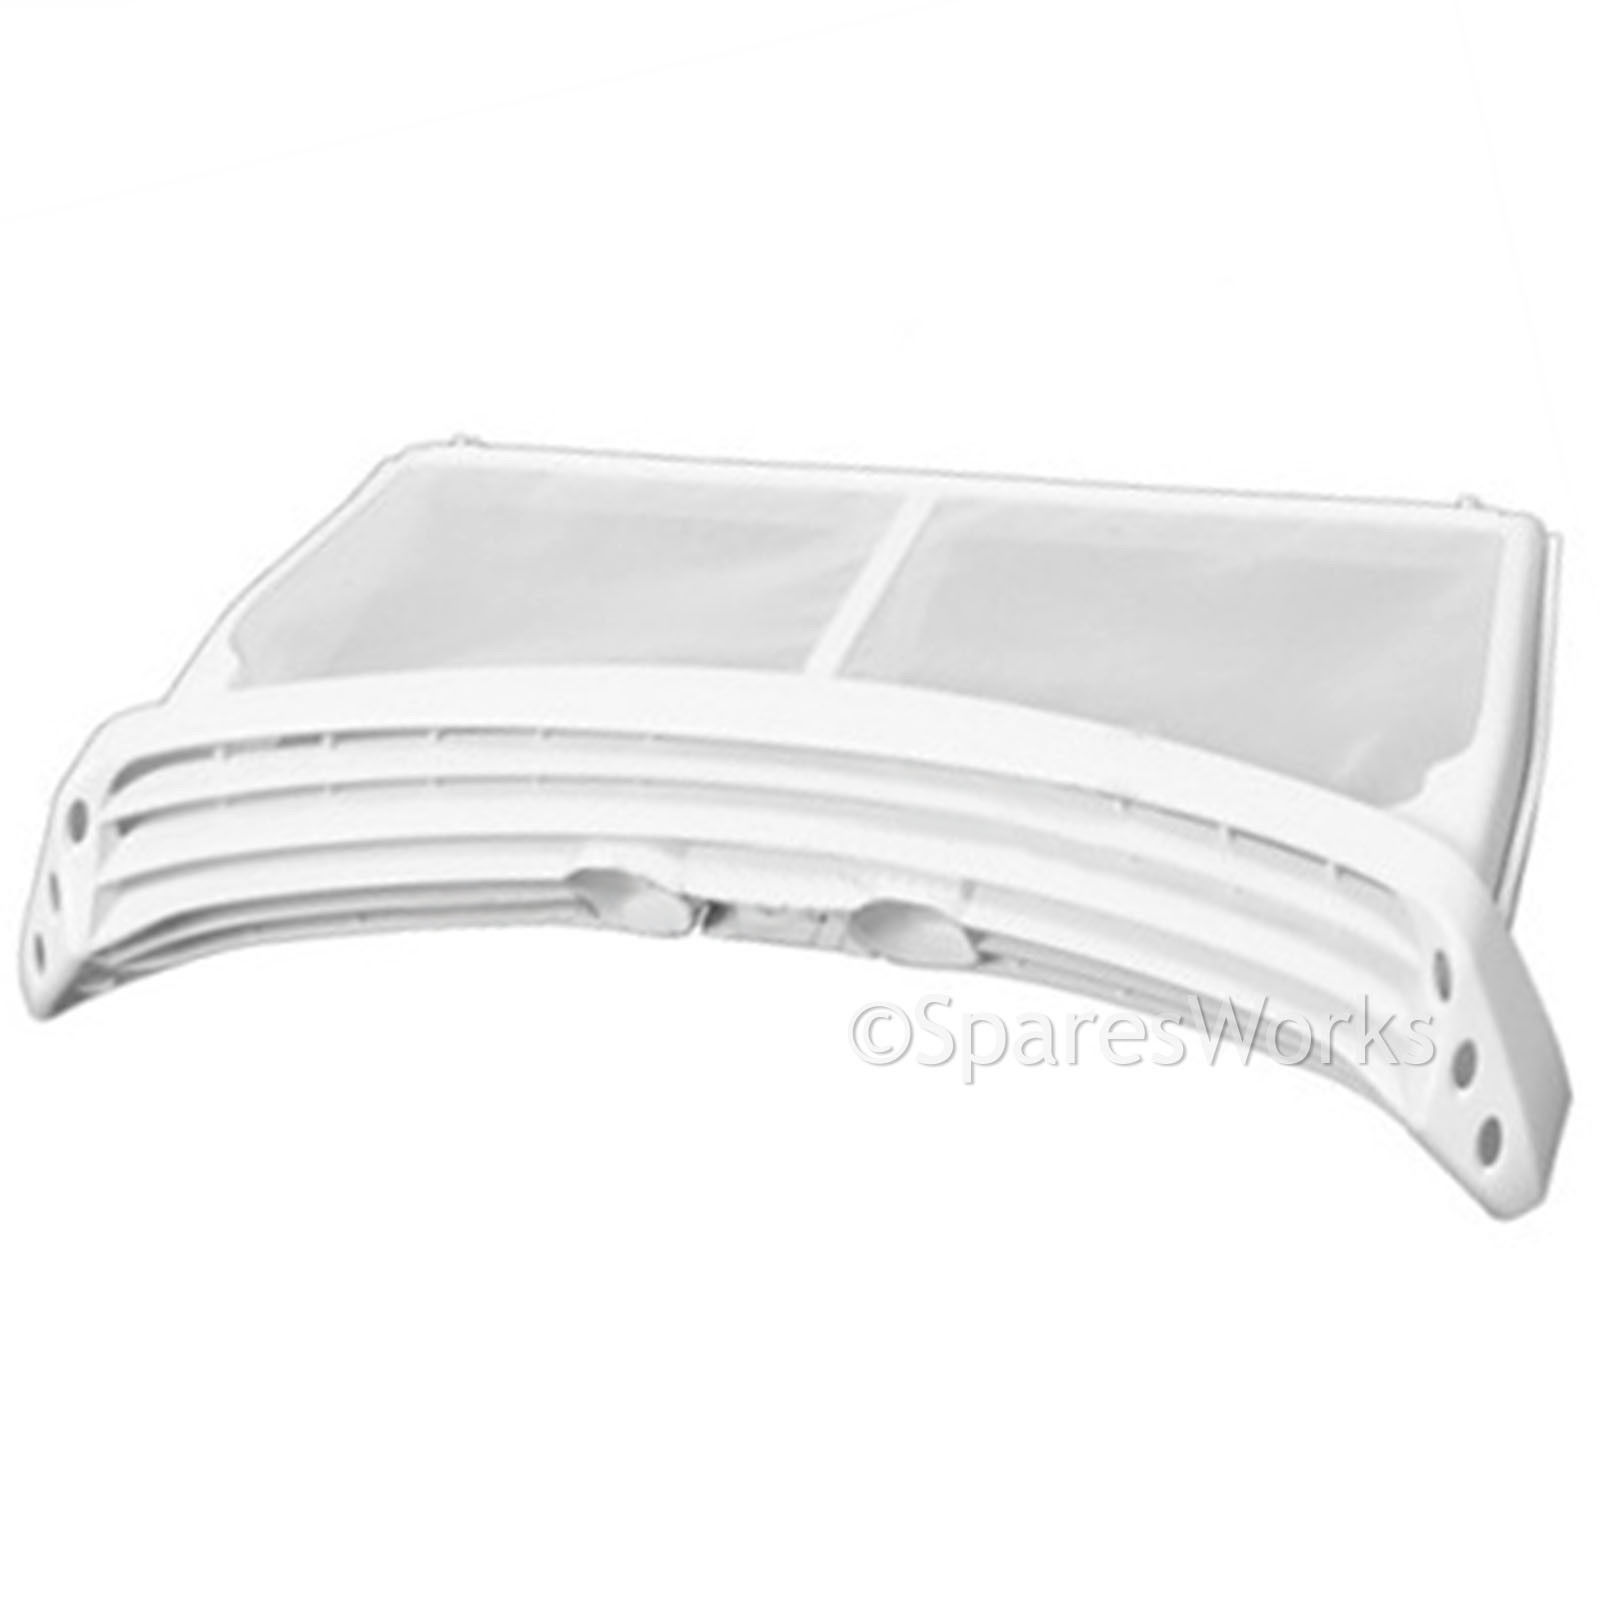 Fluff Cage Genuine Miele Tumble Dryer Lint Filter